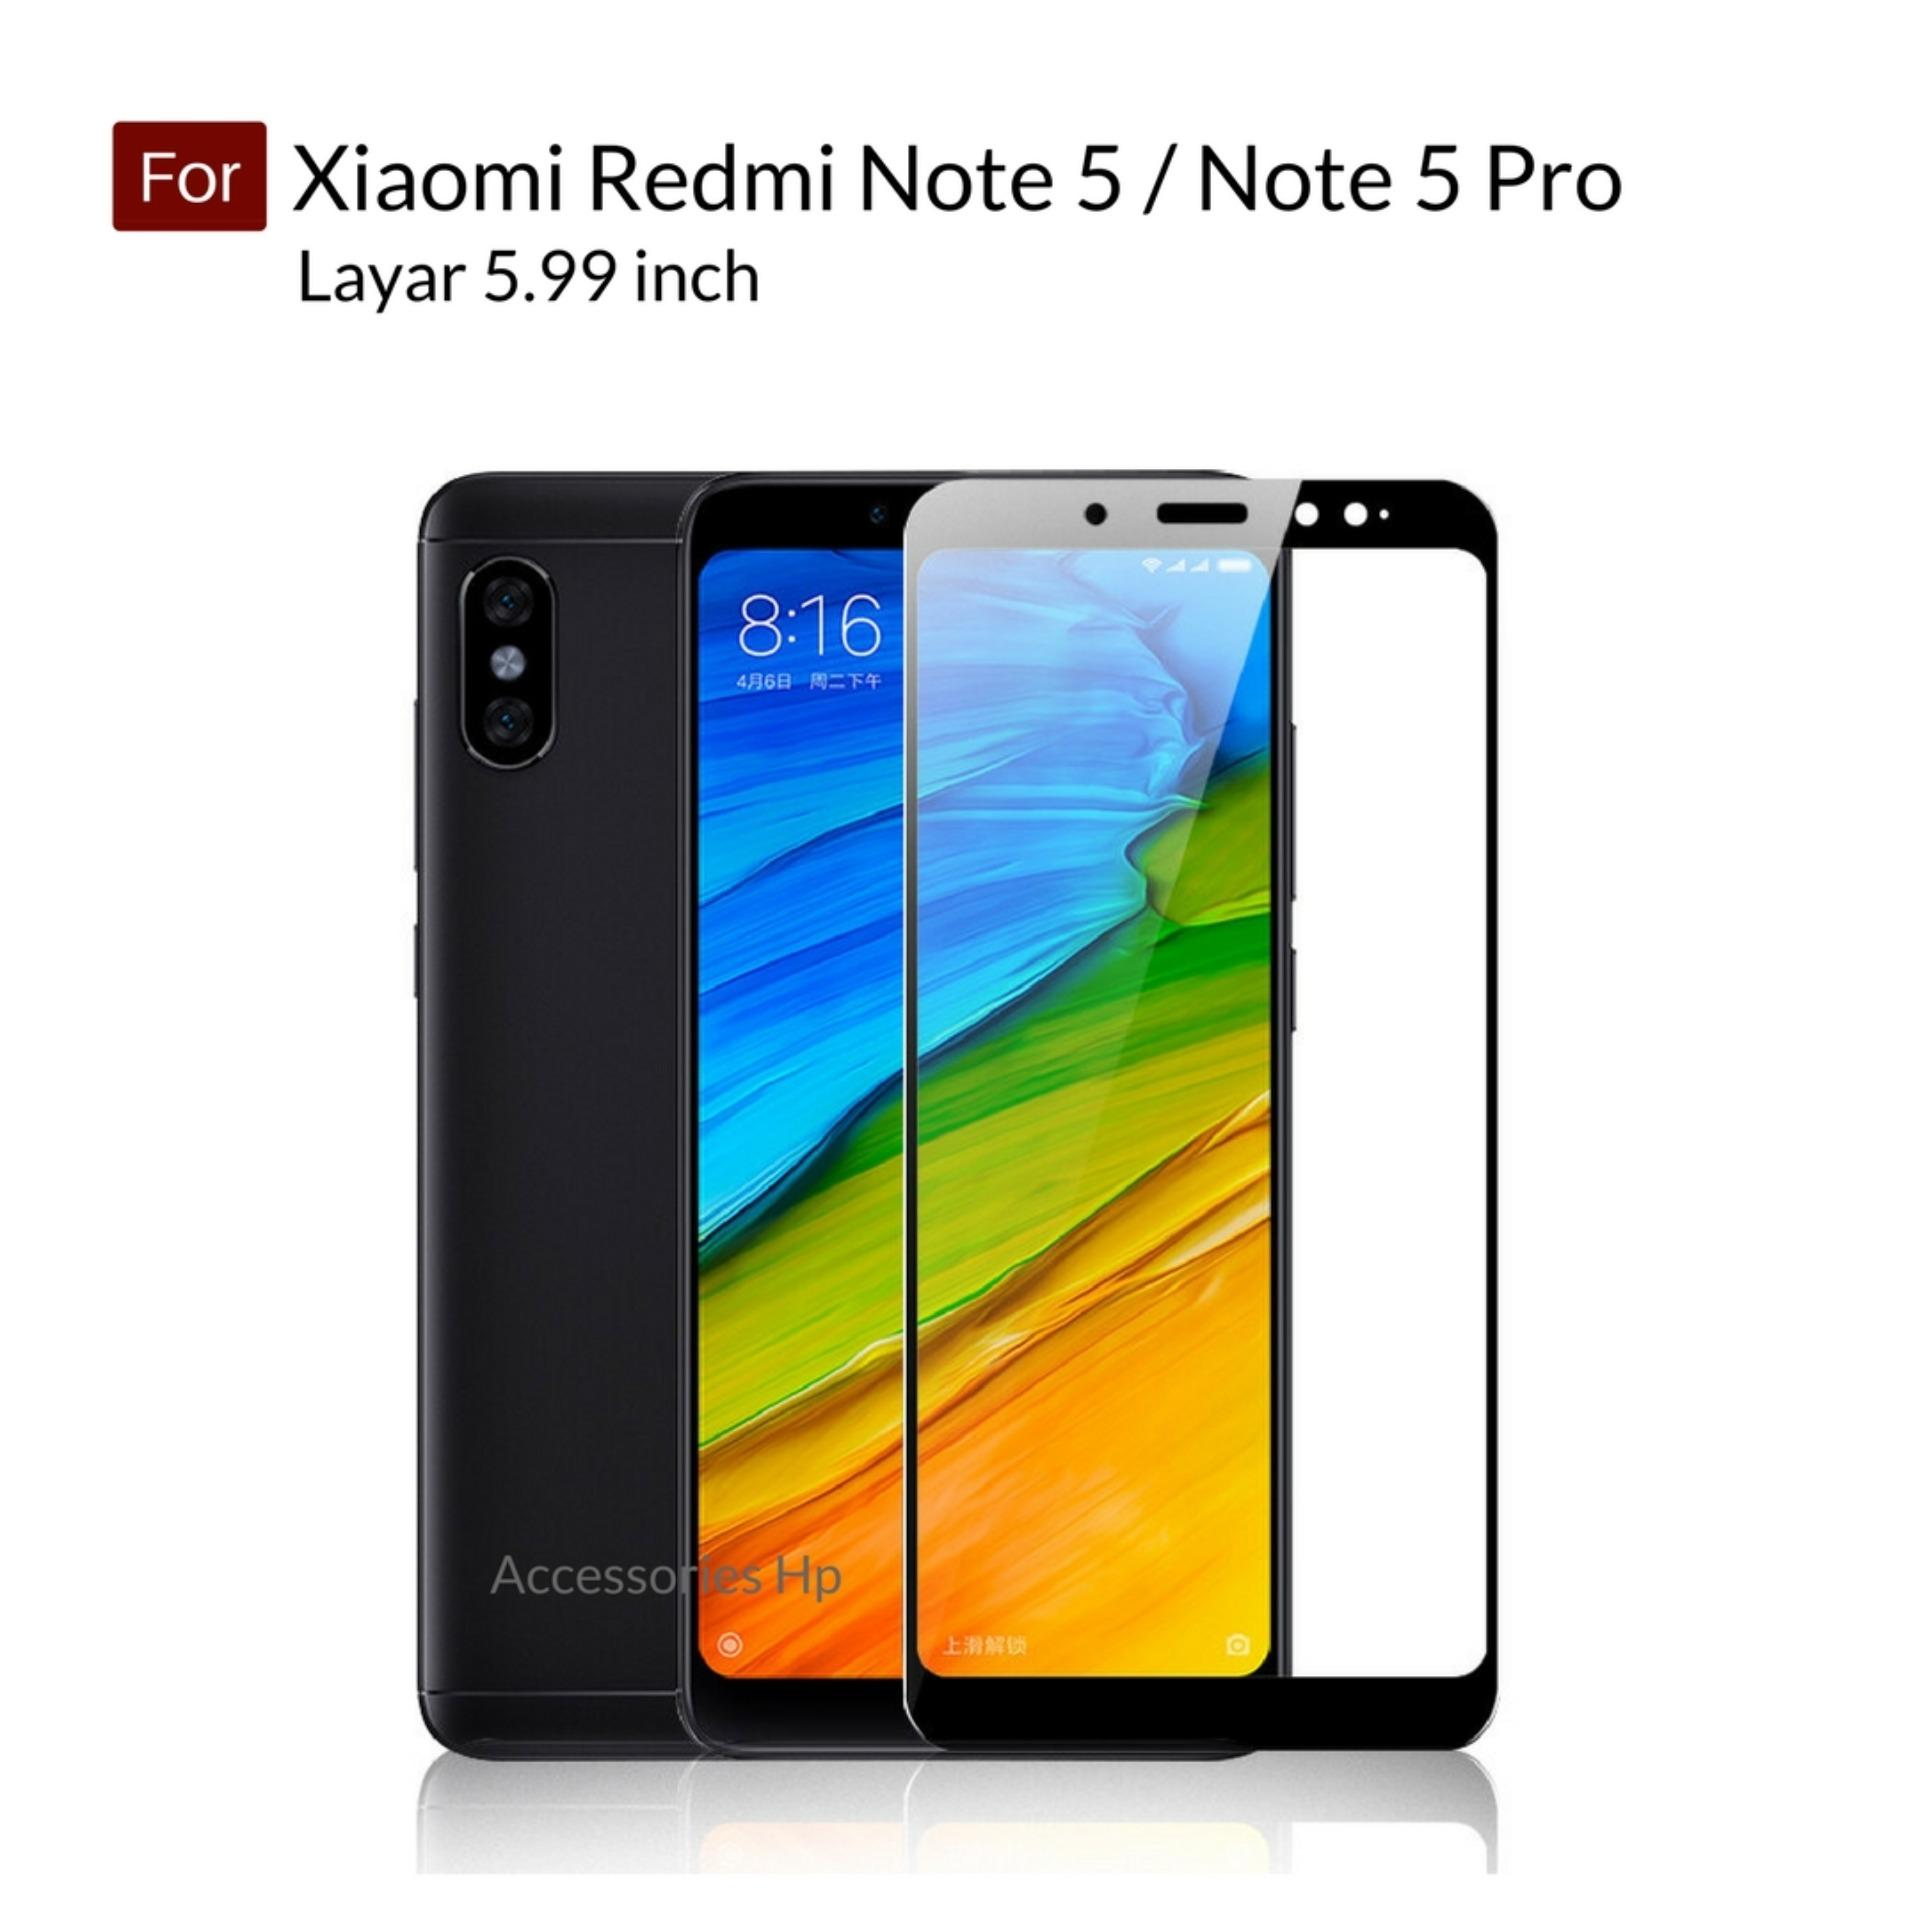 Accessories Hp Full Cover Tempered Glass Warna Screen Protector for Xiaomi Redmi Note 5 / Note